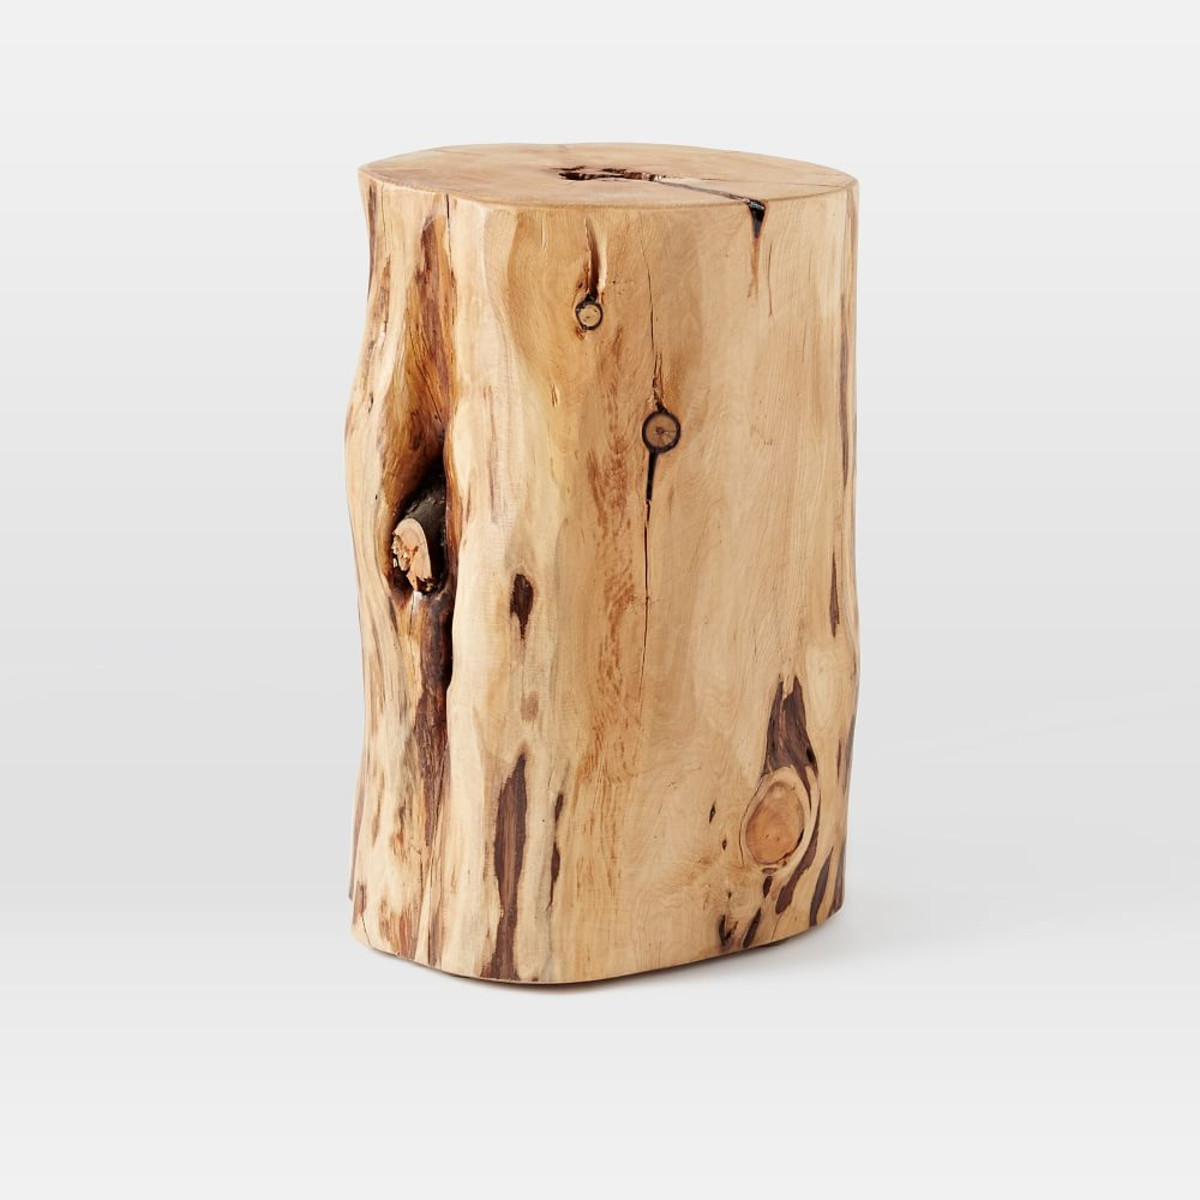 natural tree stump side table west elm media wood accent quilted placemats industrial cream colored tables silver grey lamps painted nightstands small dining counter height chairs